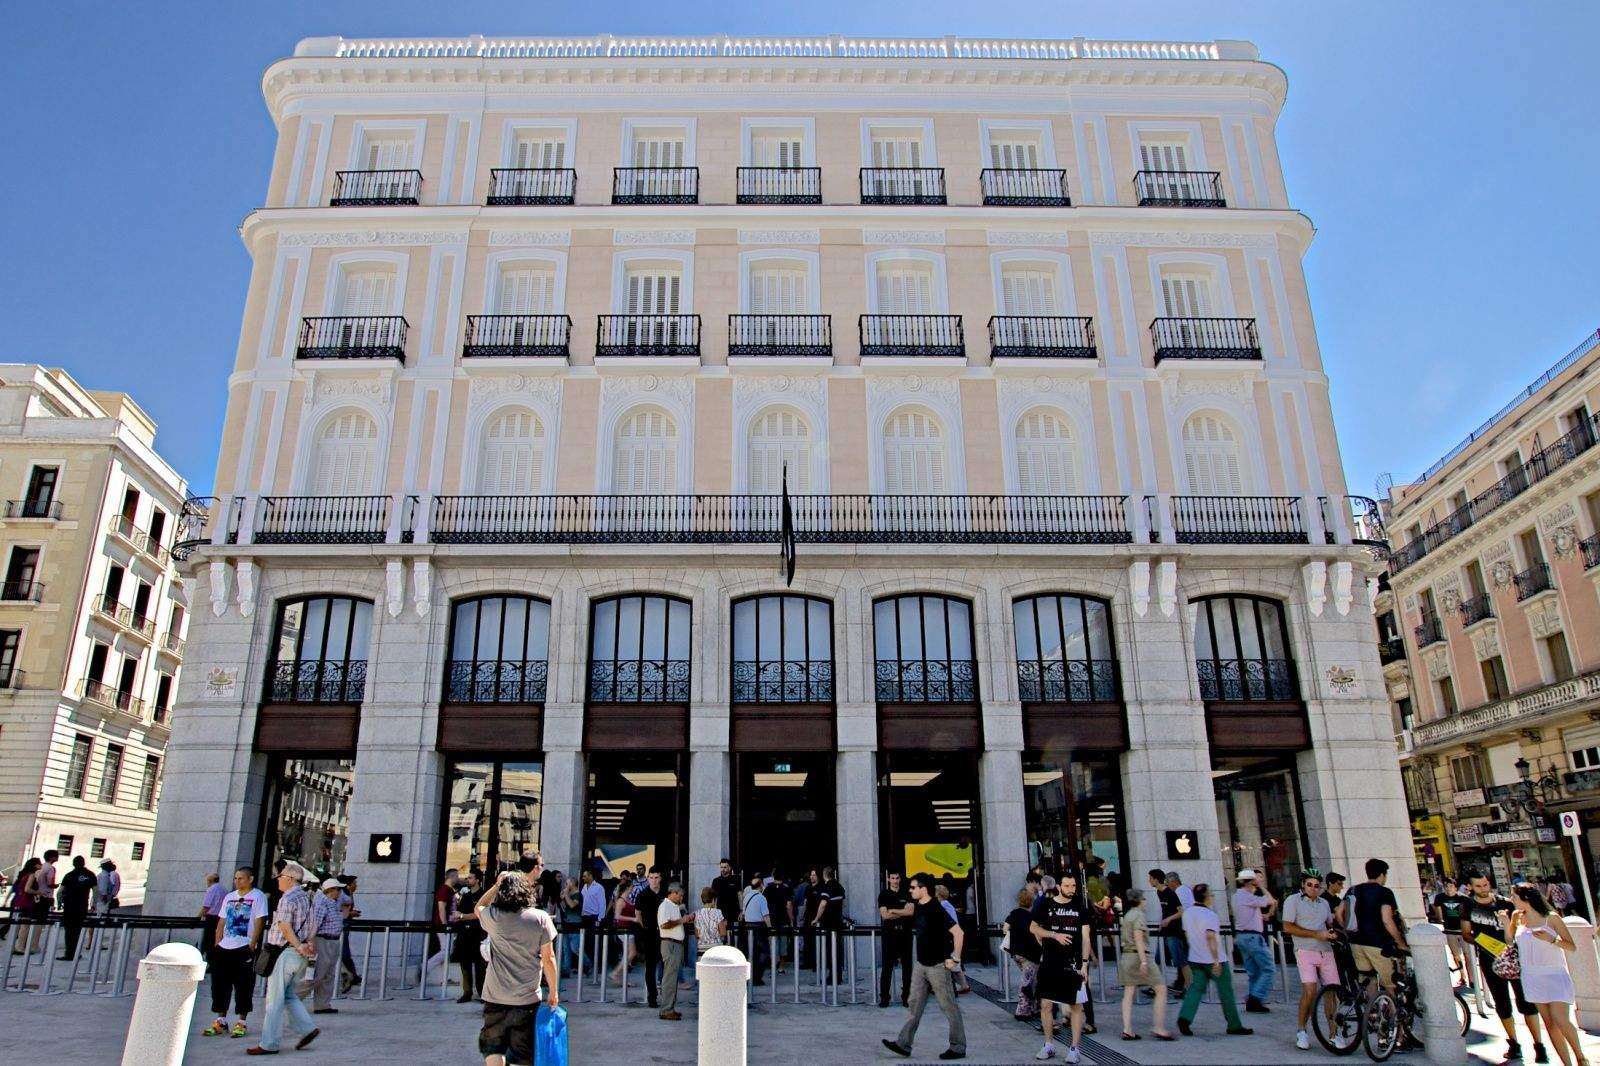 Ole Apple Opens New Store In Madrid To Massive Crowds